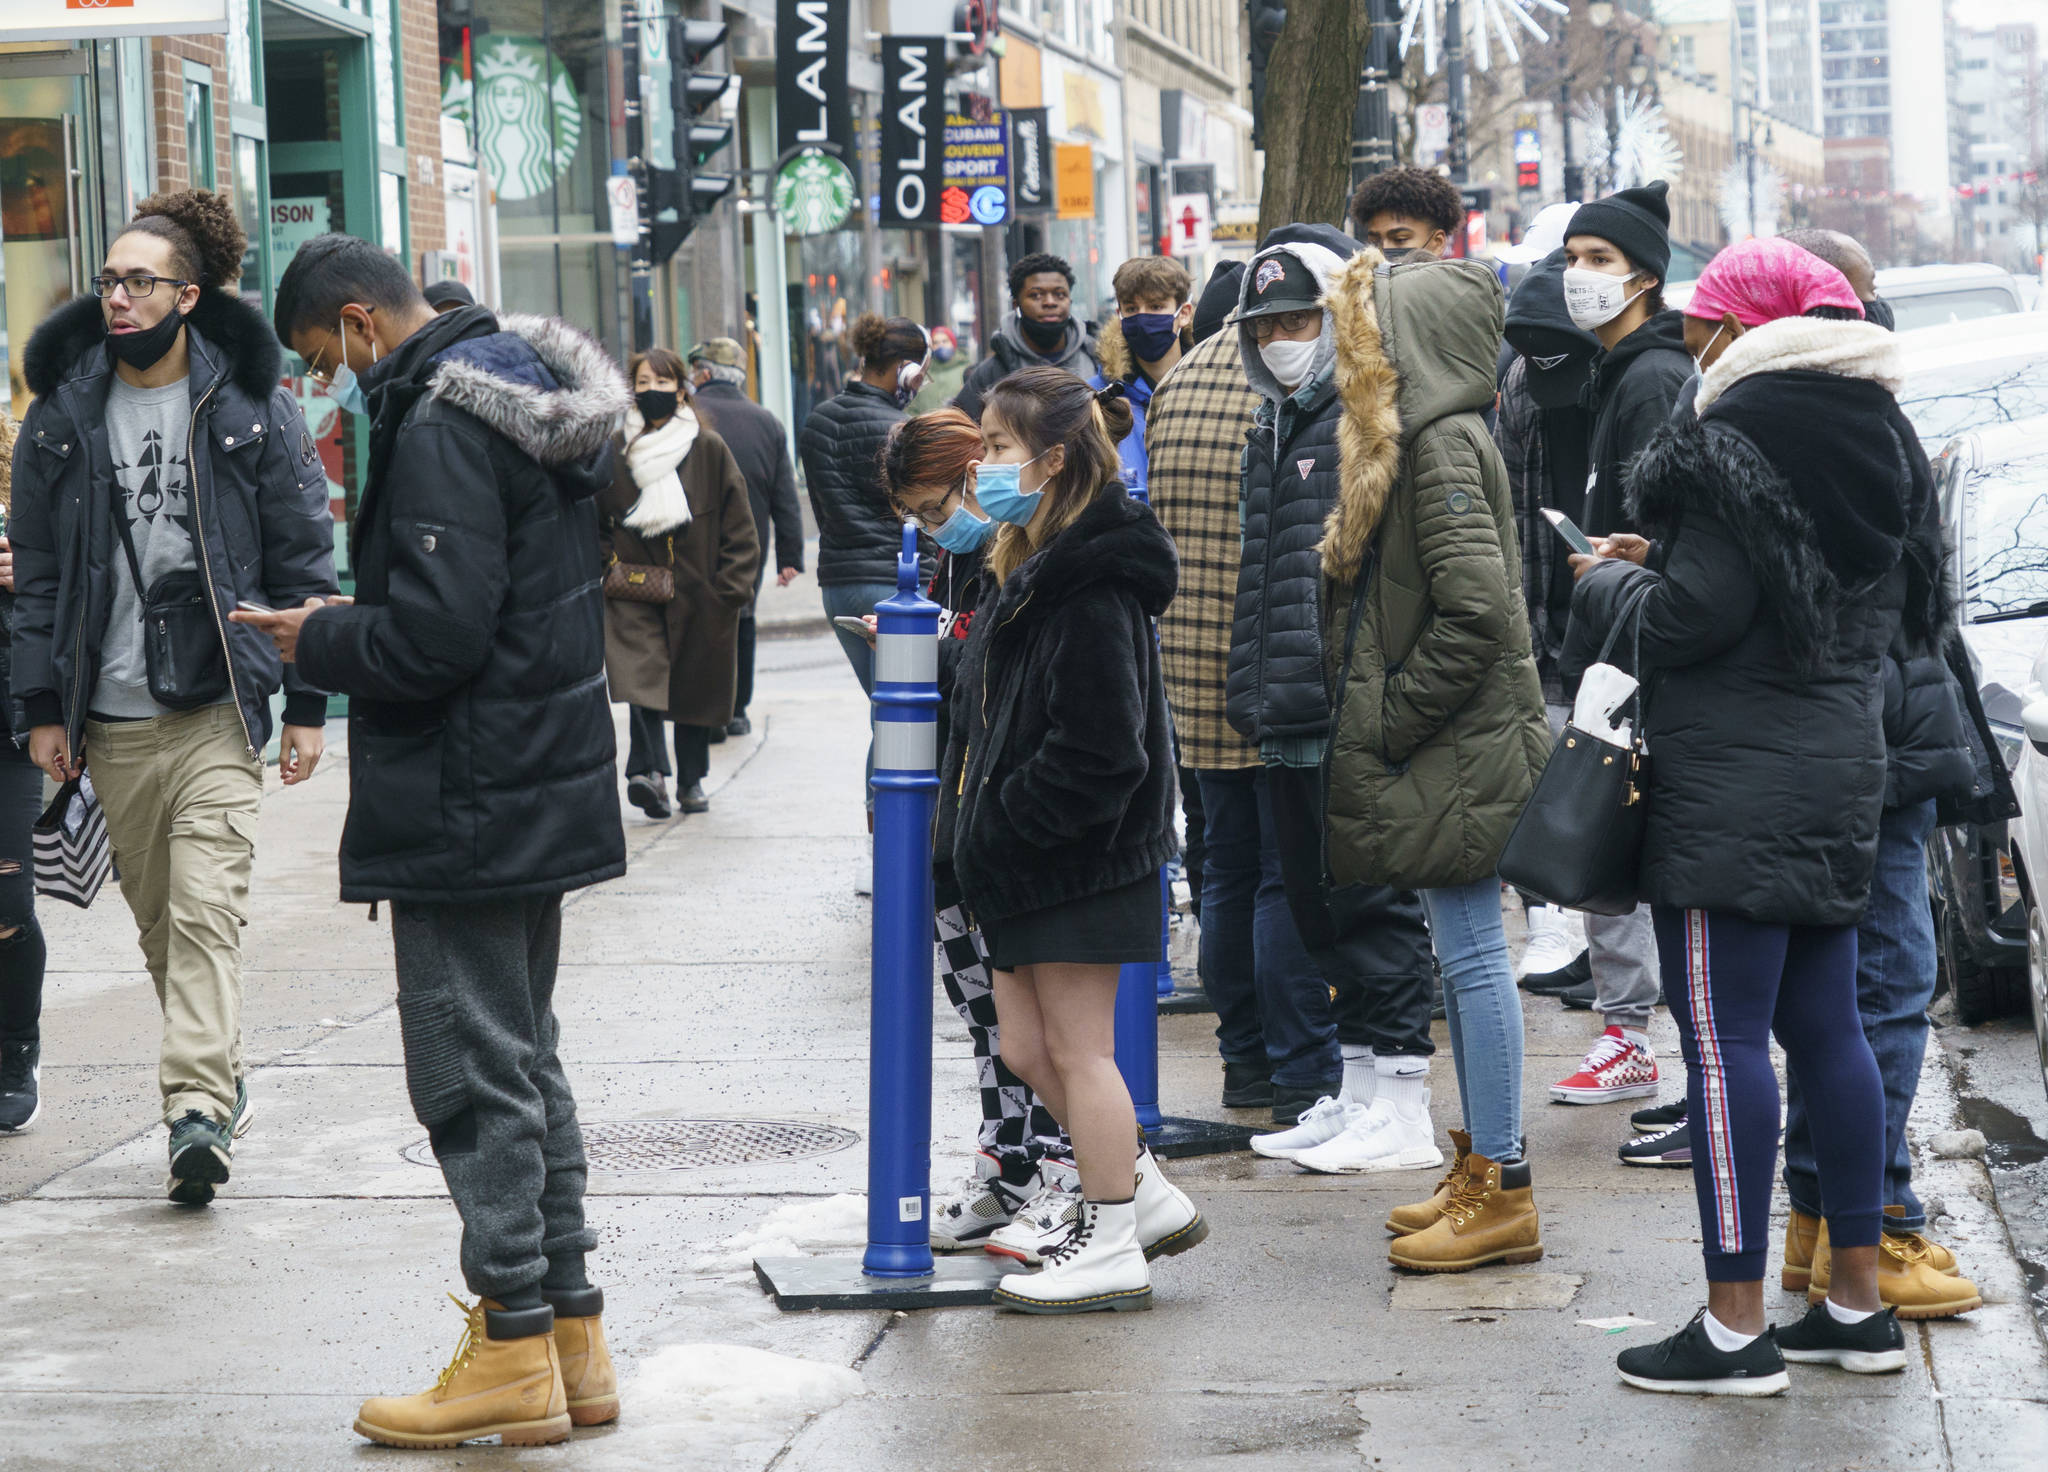 Shoppers line up in front of a shop on Montreal's Saint-Catherine Street in search of Black Friday deals in Montreal, Friday, Nov. 27, 2020. THE CANADIAN PRESS/Paul Chiasson